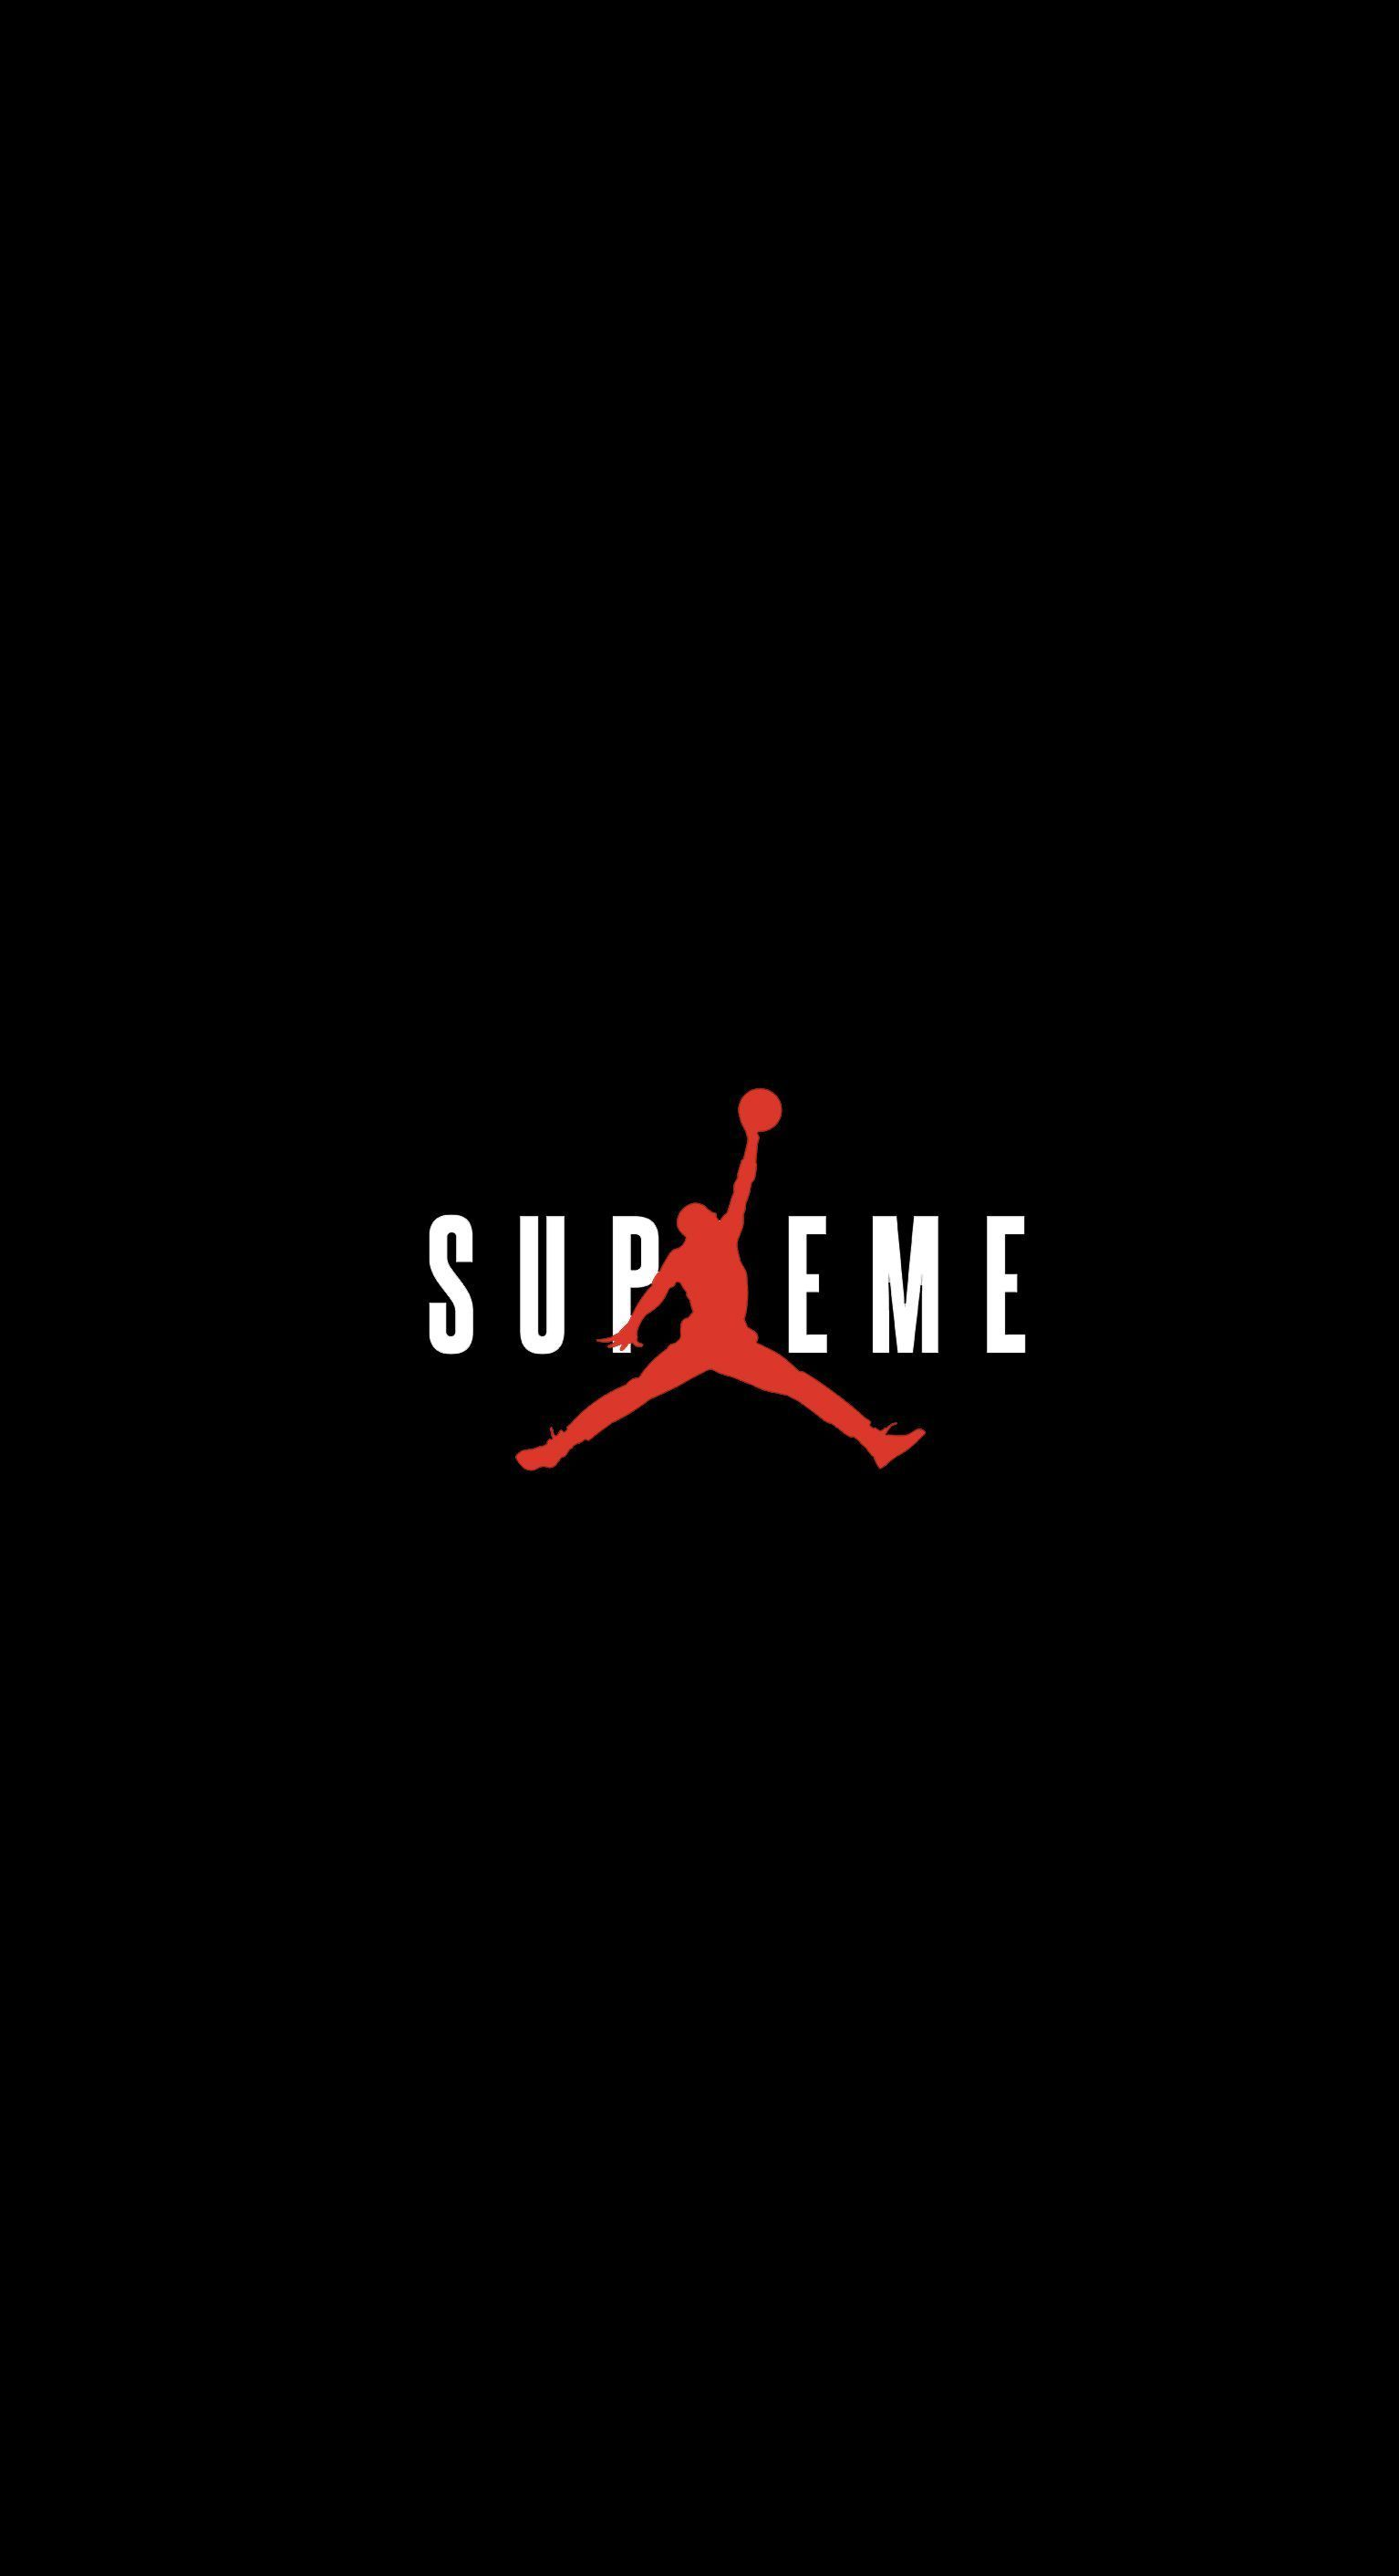 Supreme X Jordan Wallpaper Streetwear Streetwear Wallpapers Wallpaper Zone In 2020 Streetwear Wallpaper Supreme Iphone Wallpaper Supreme Wallpaper